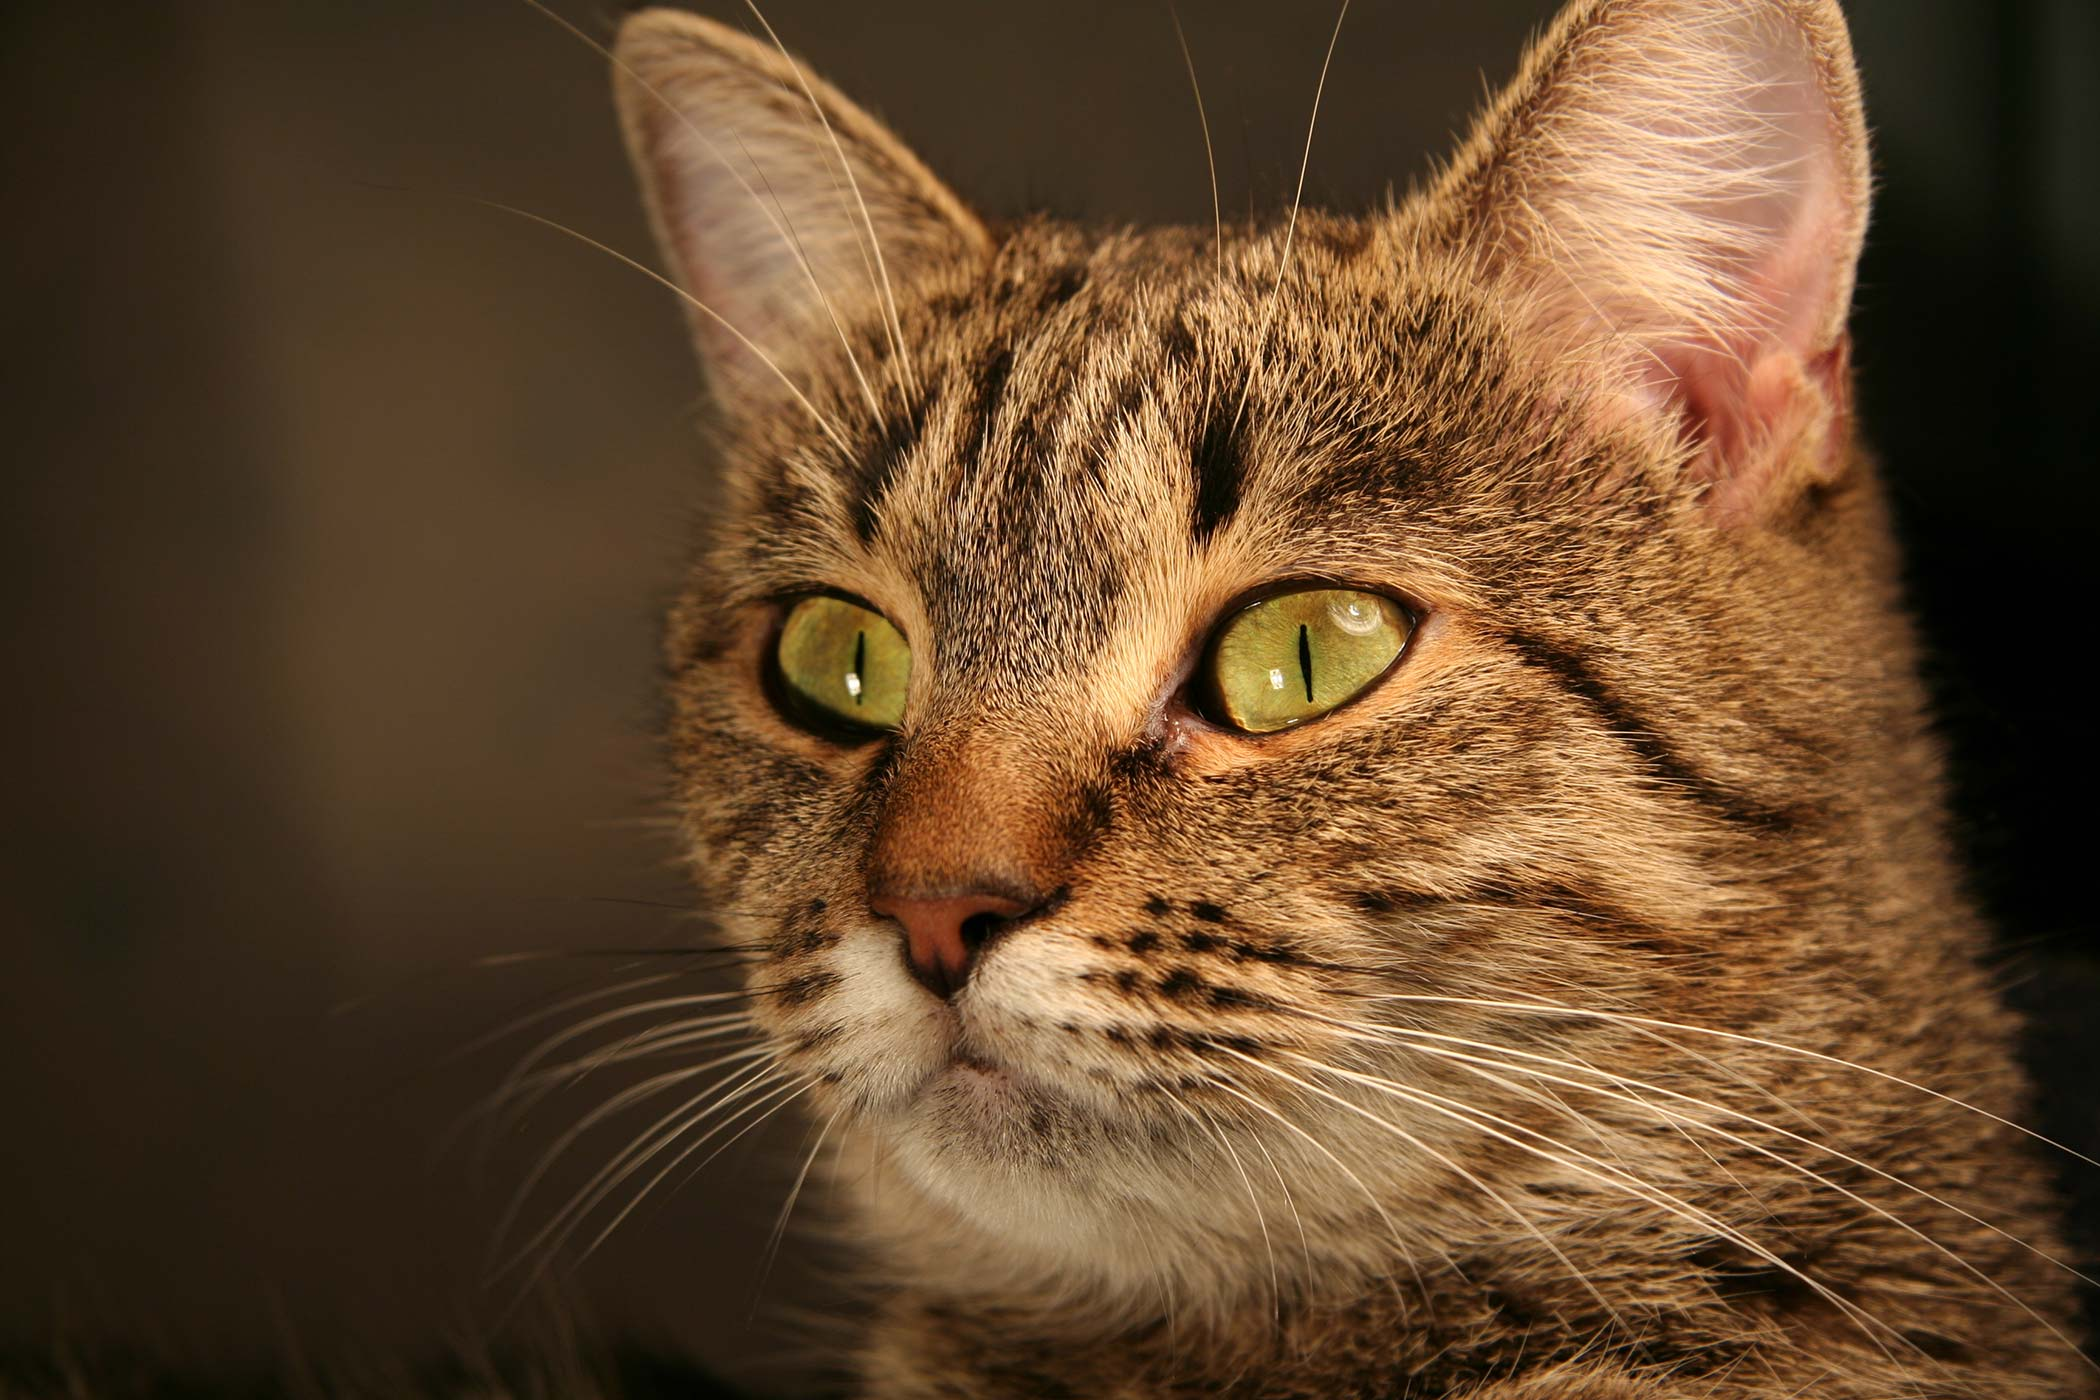 Crystals in the Urine in Cats